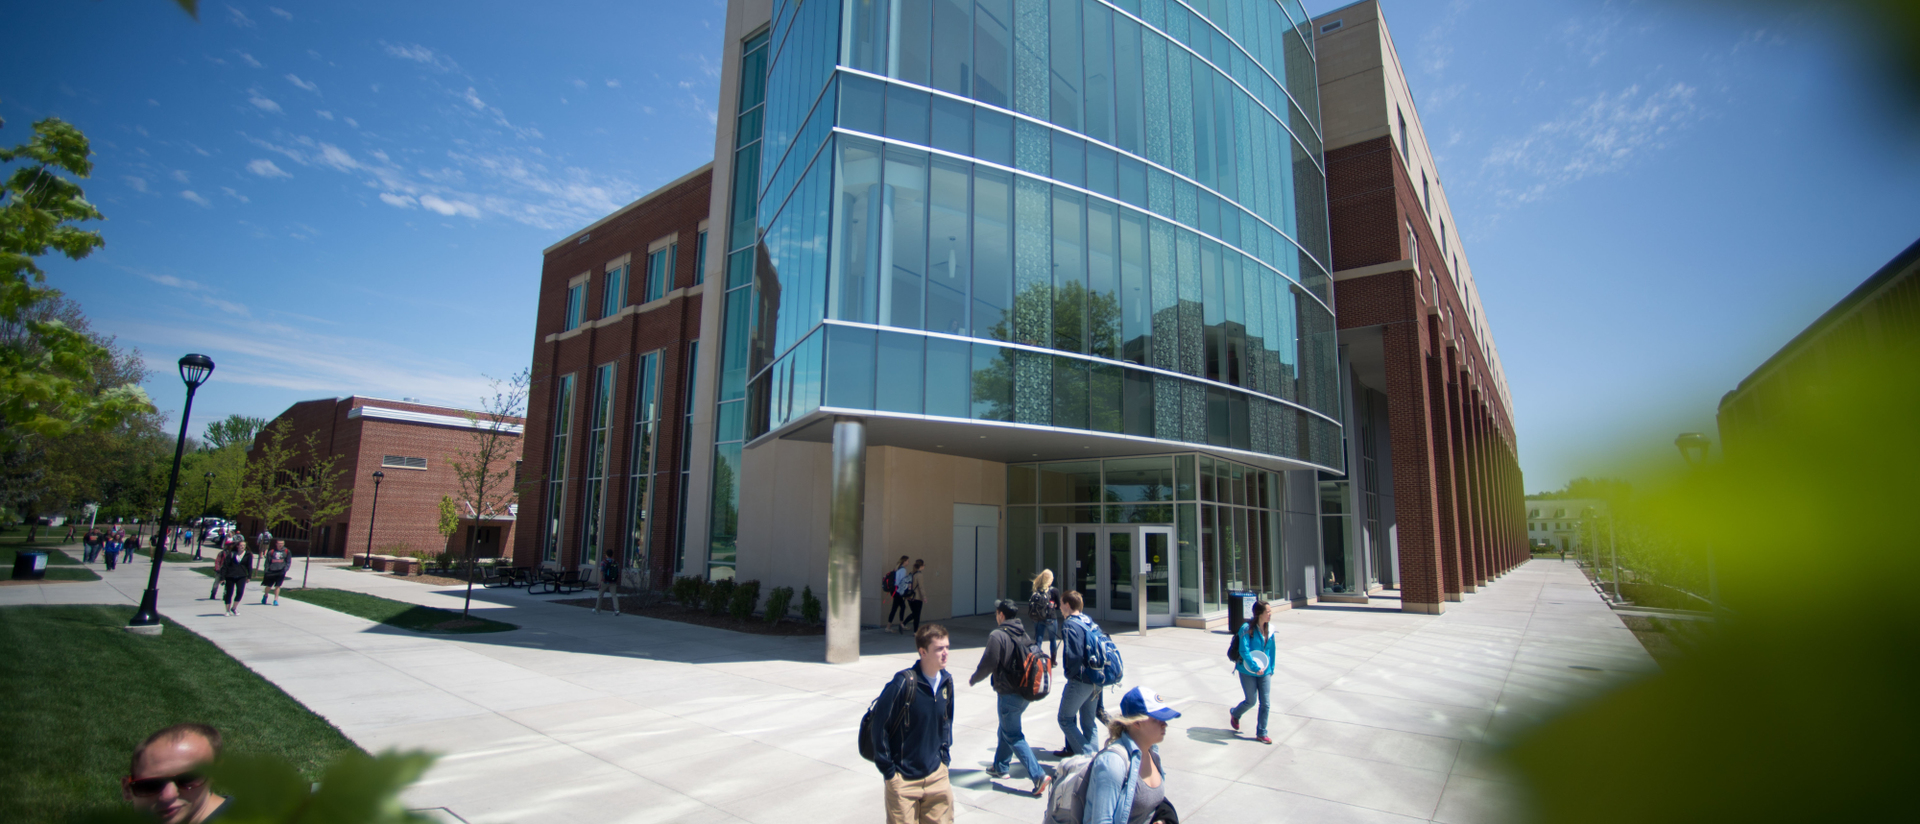 Students walking in front of Centennial Hall